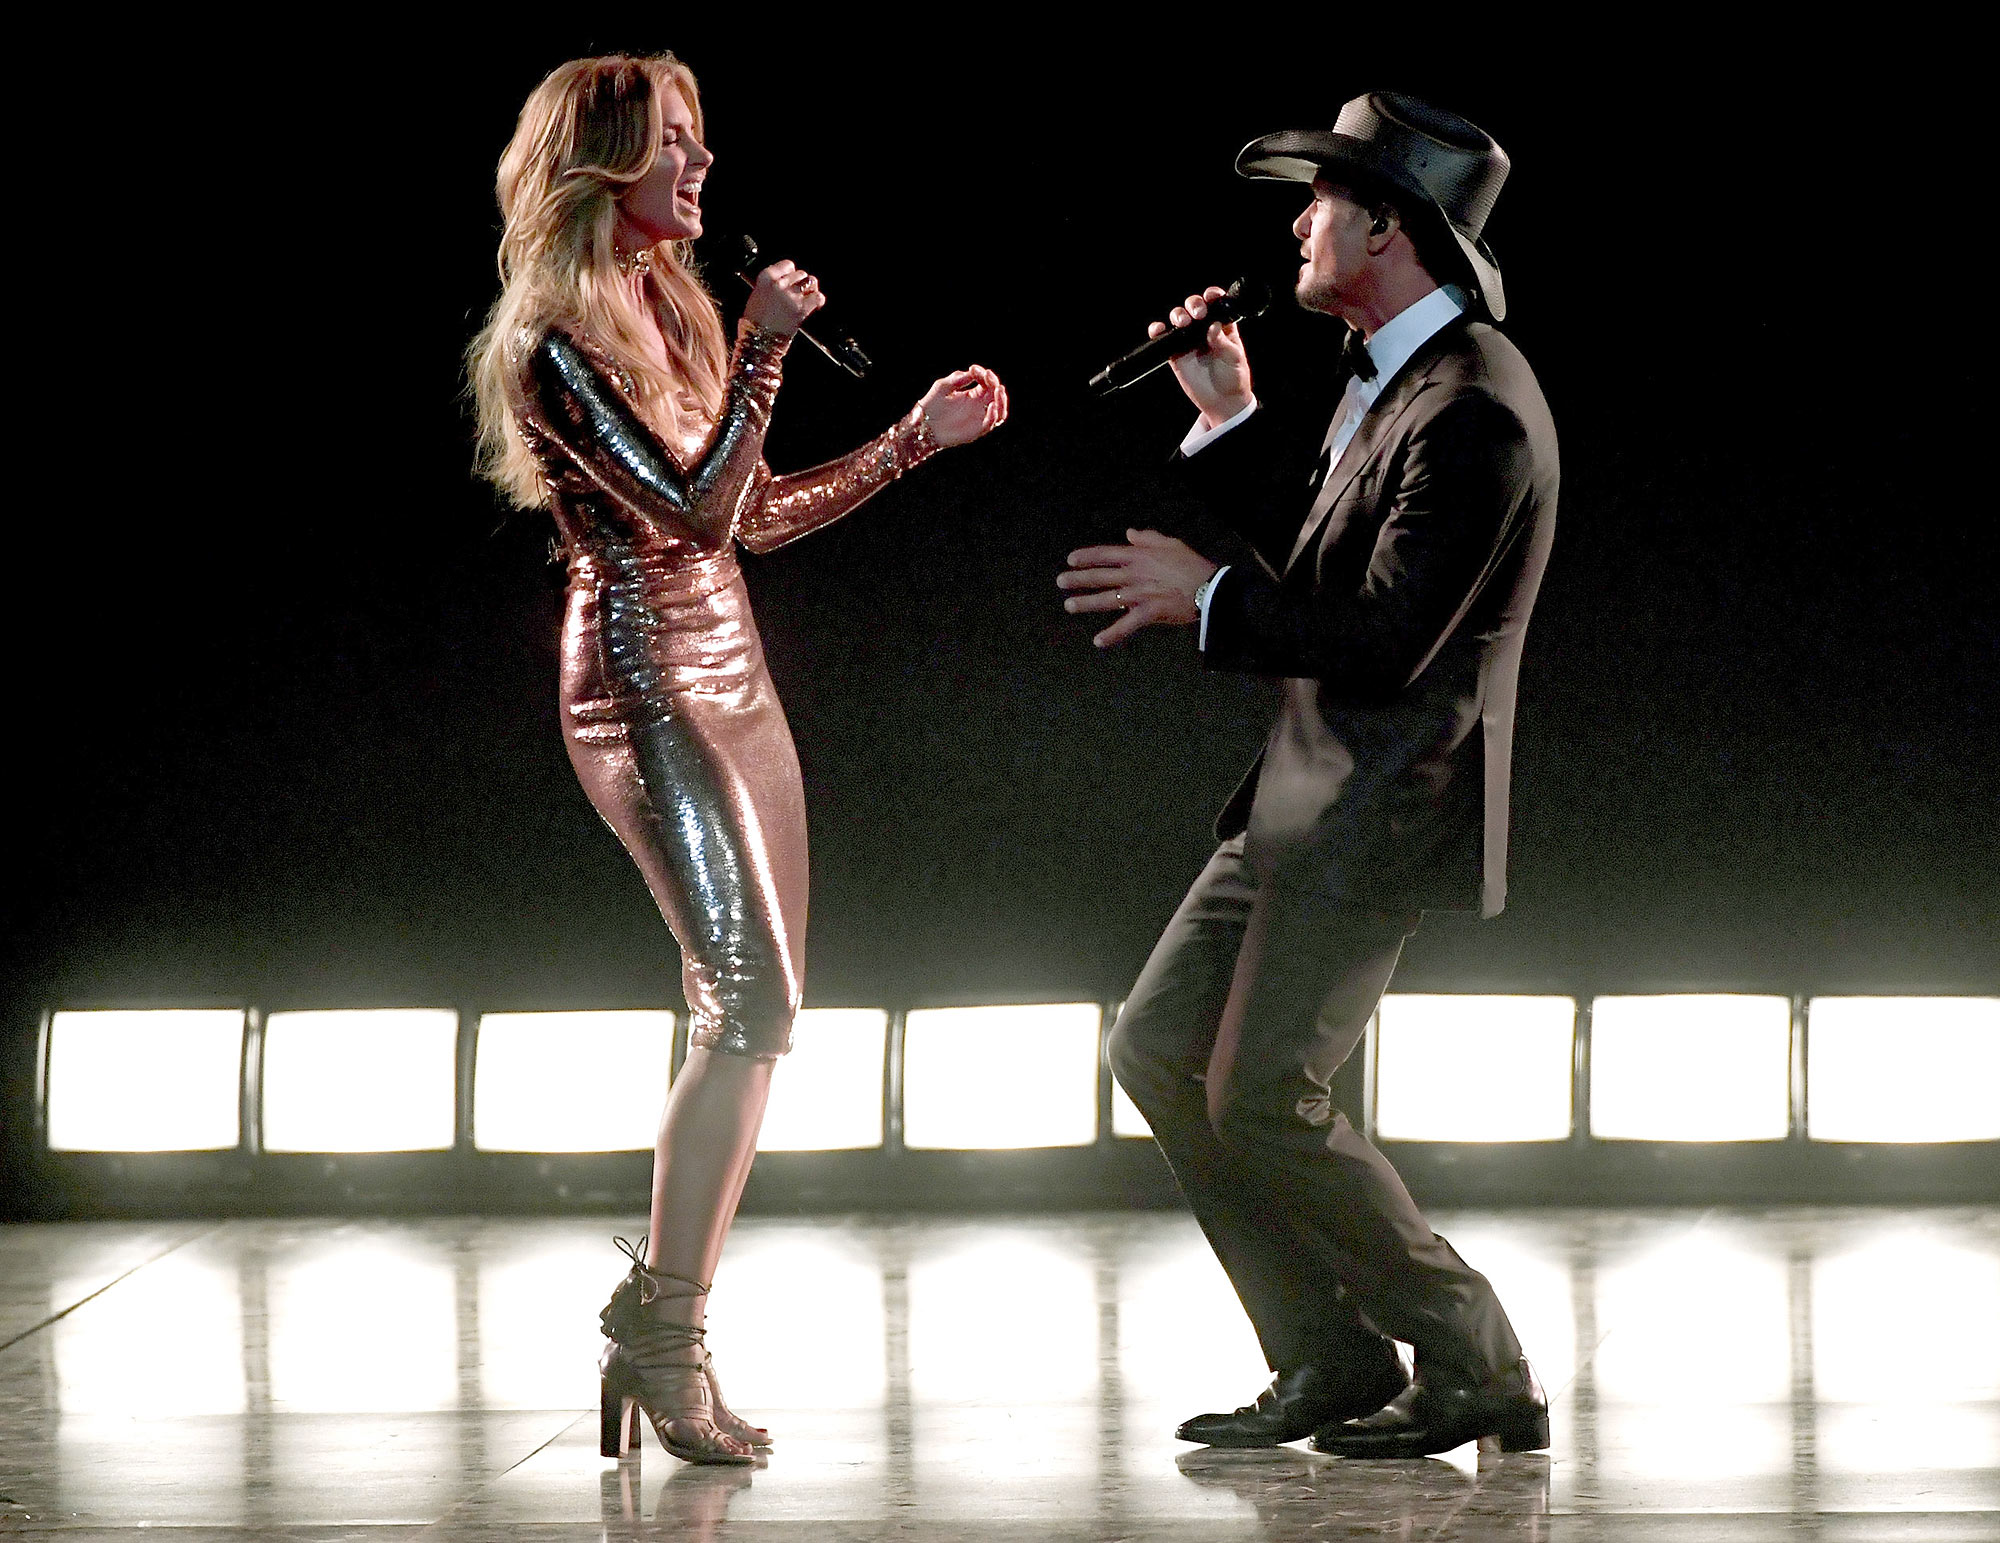 Now That's How You 'Speak to a Girl': Tim McGraw and Faith Hill Perform Newly Released Duet at ACMs